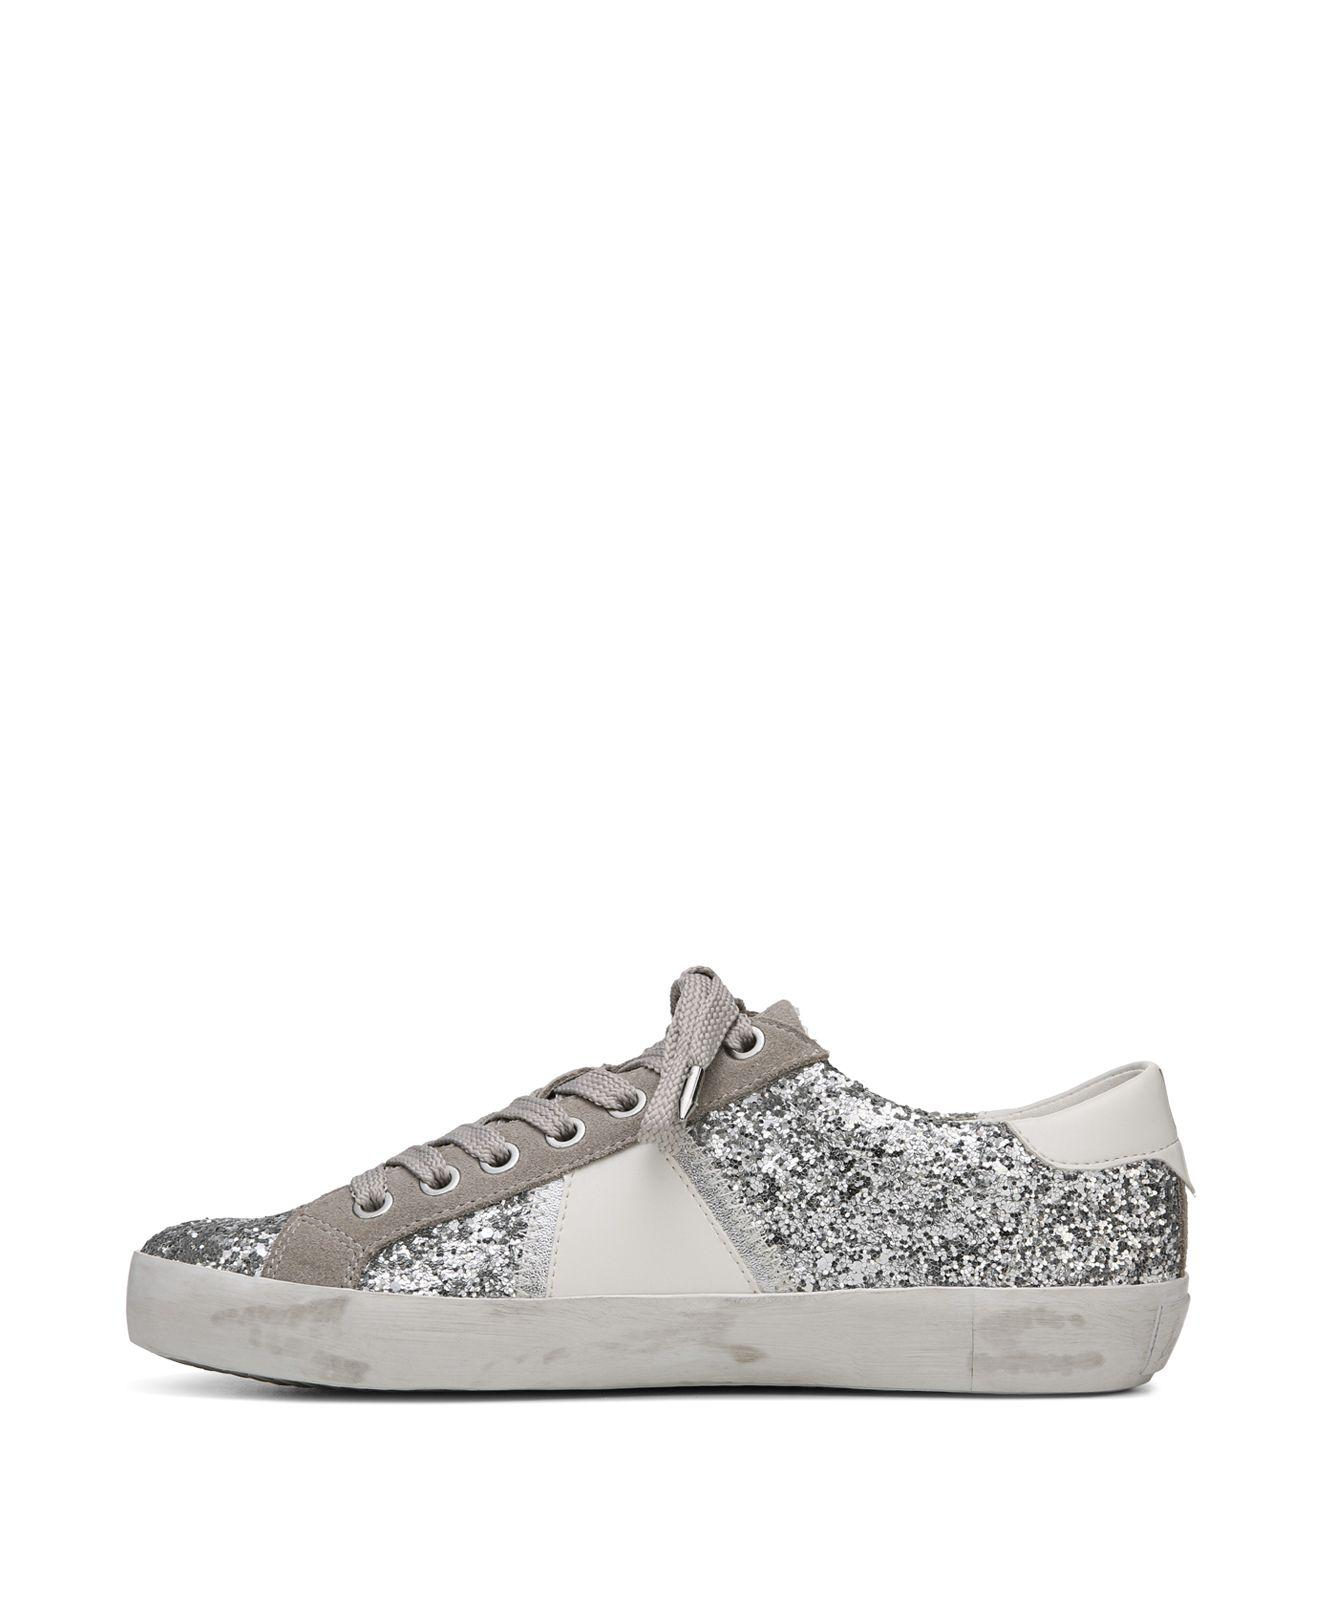 Sam Edelman Women's Baylee Suede & Glitter Low Top Lace Up Sneakers VdMRM